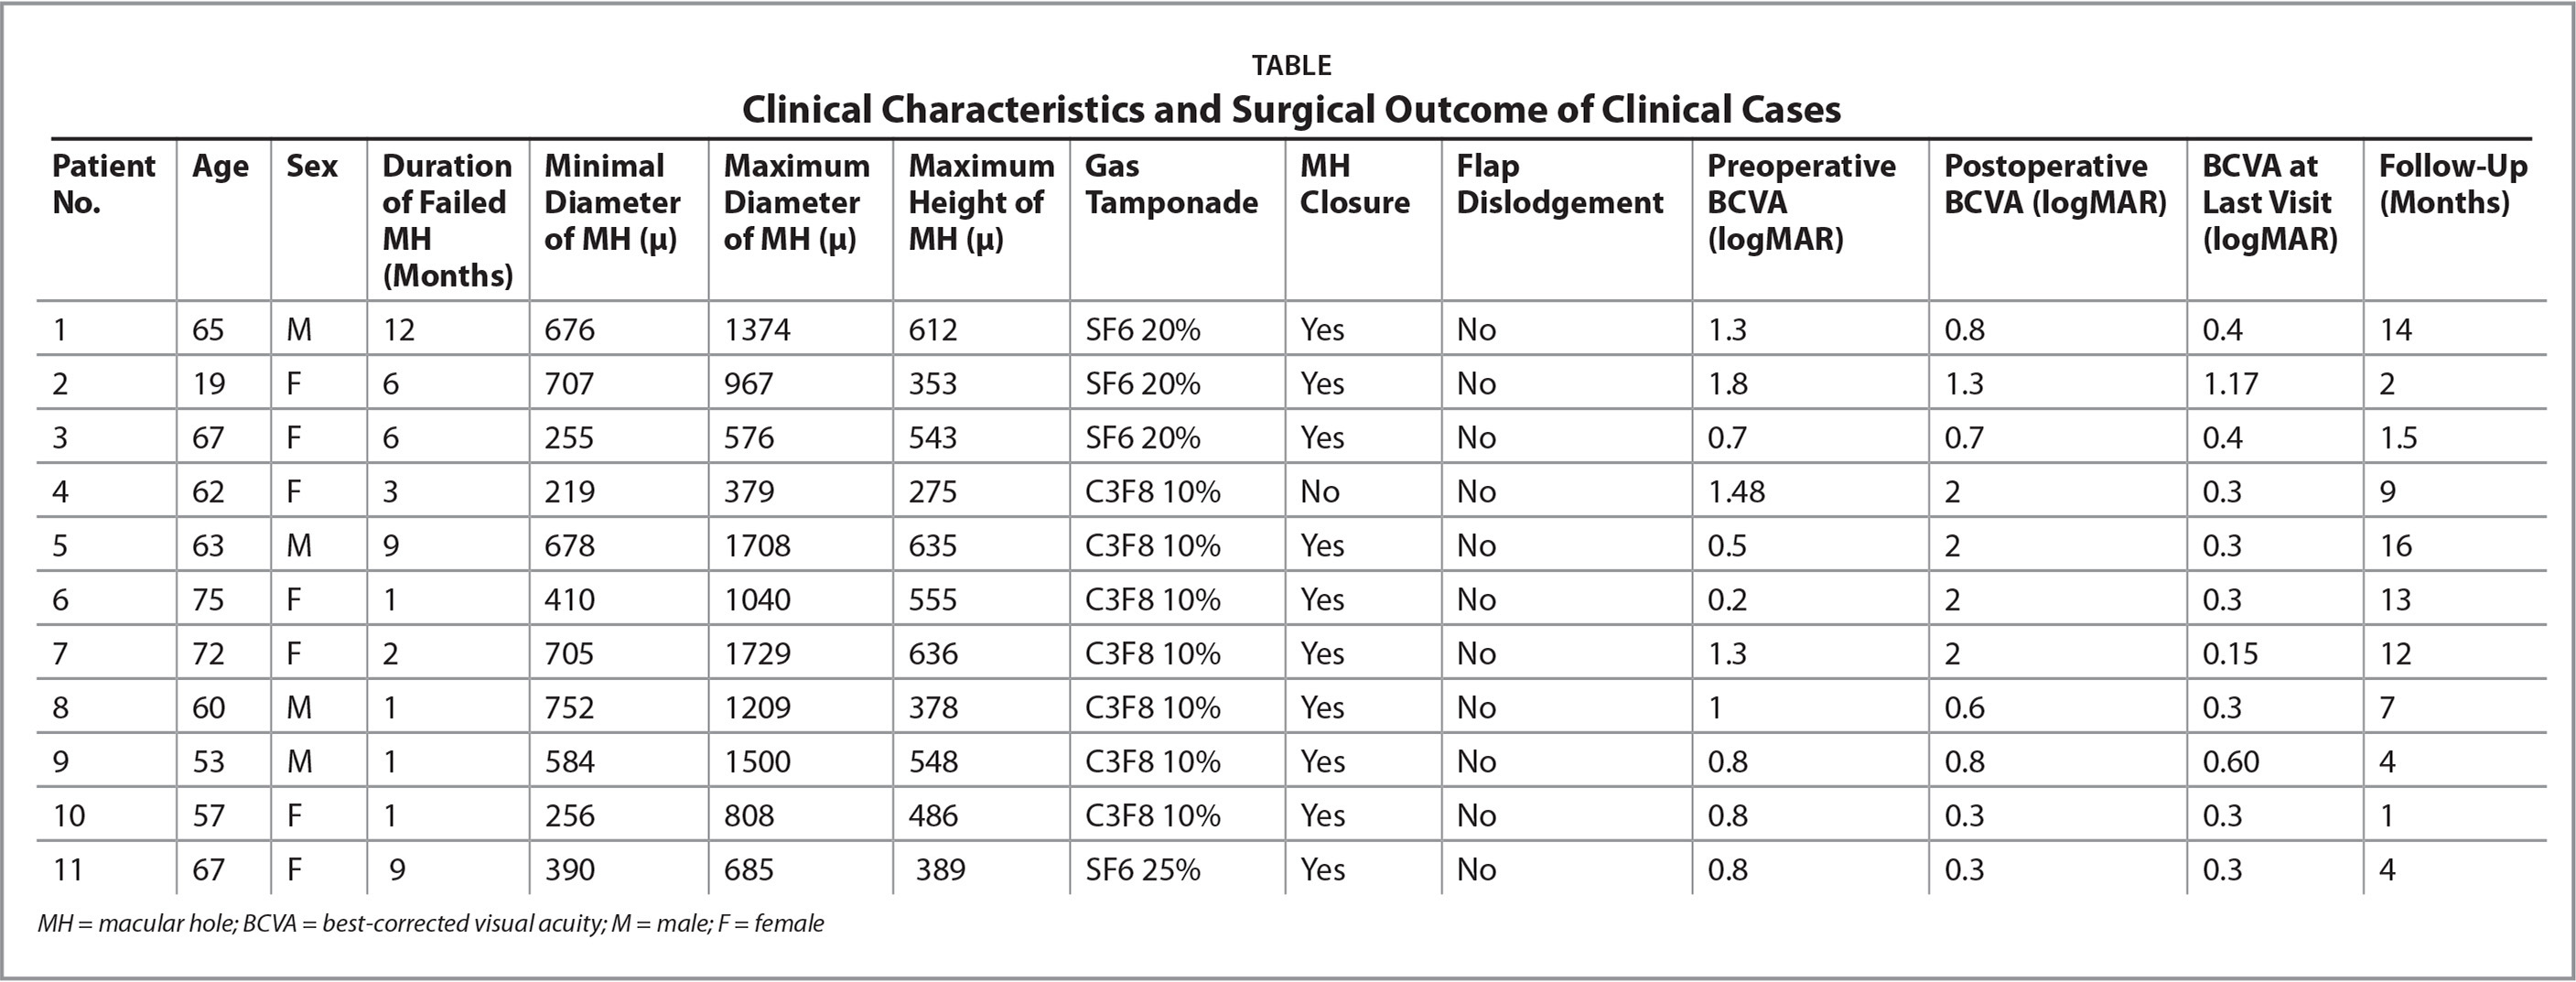 Clinical Characteristics and Surgical Outcome of Clinical Cases